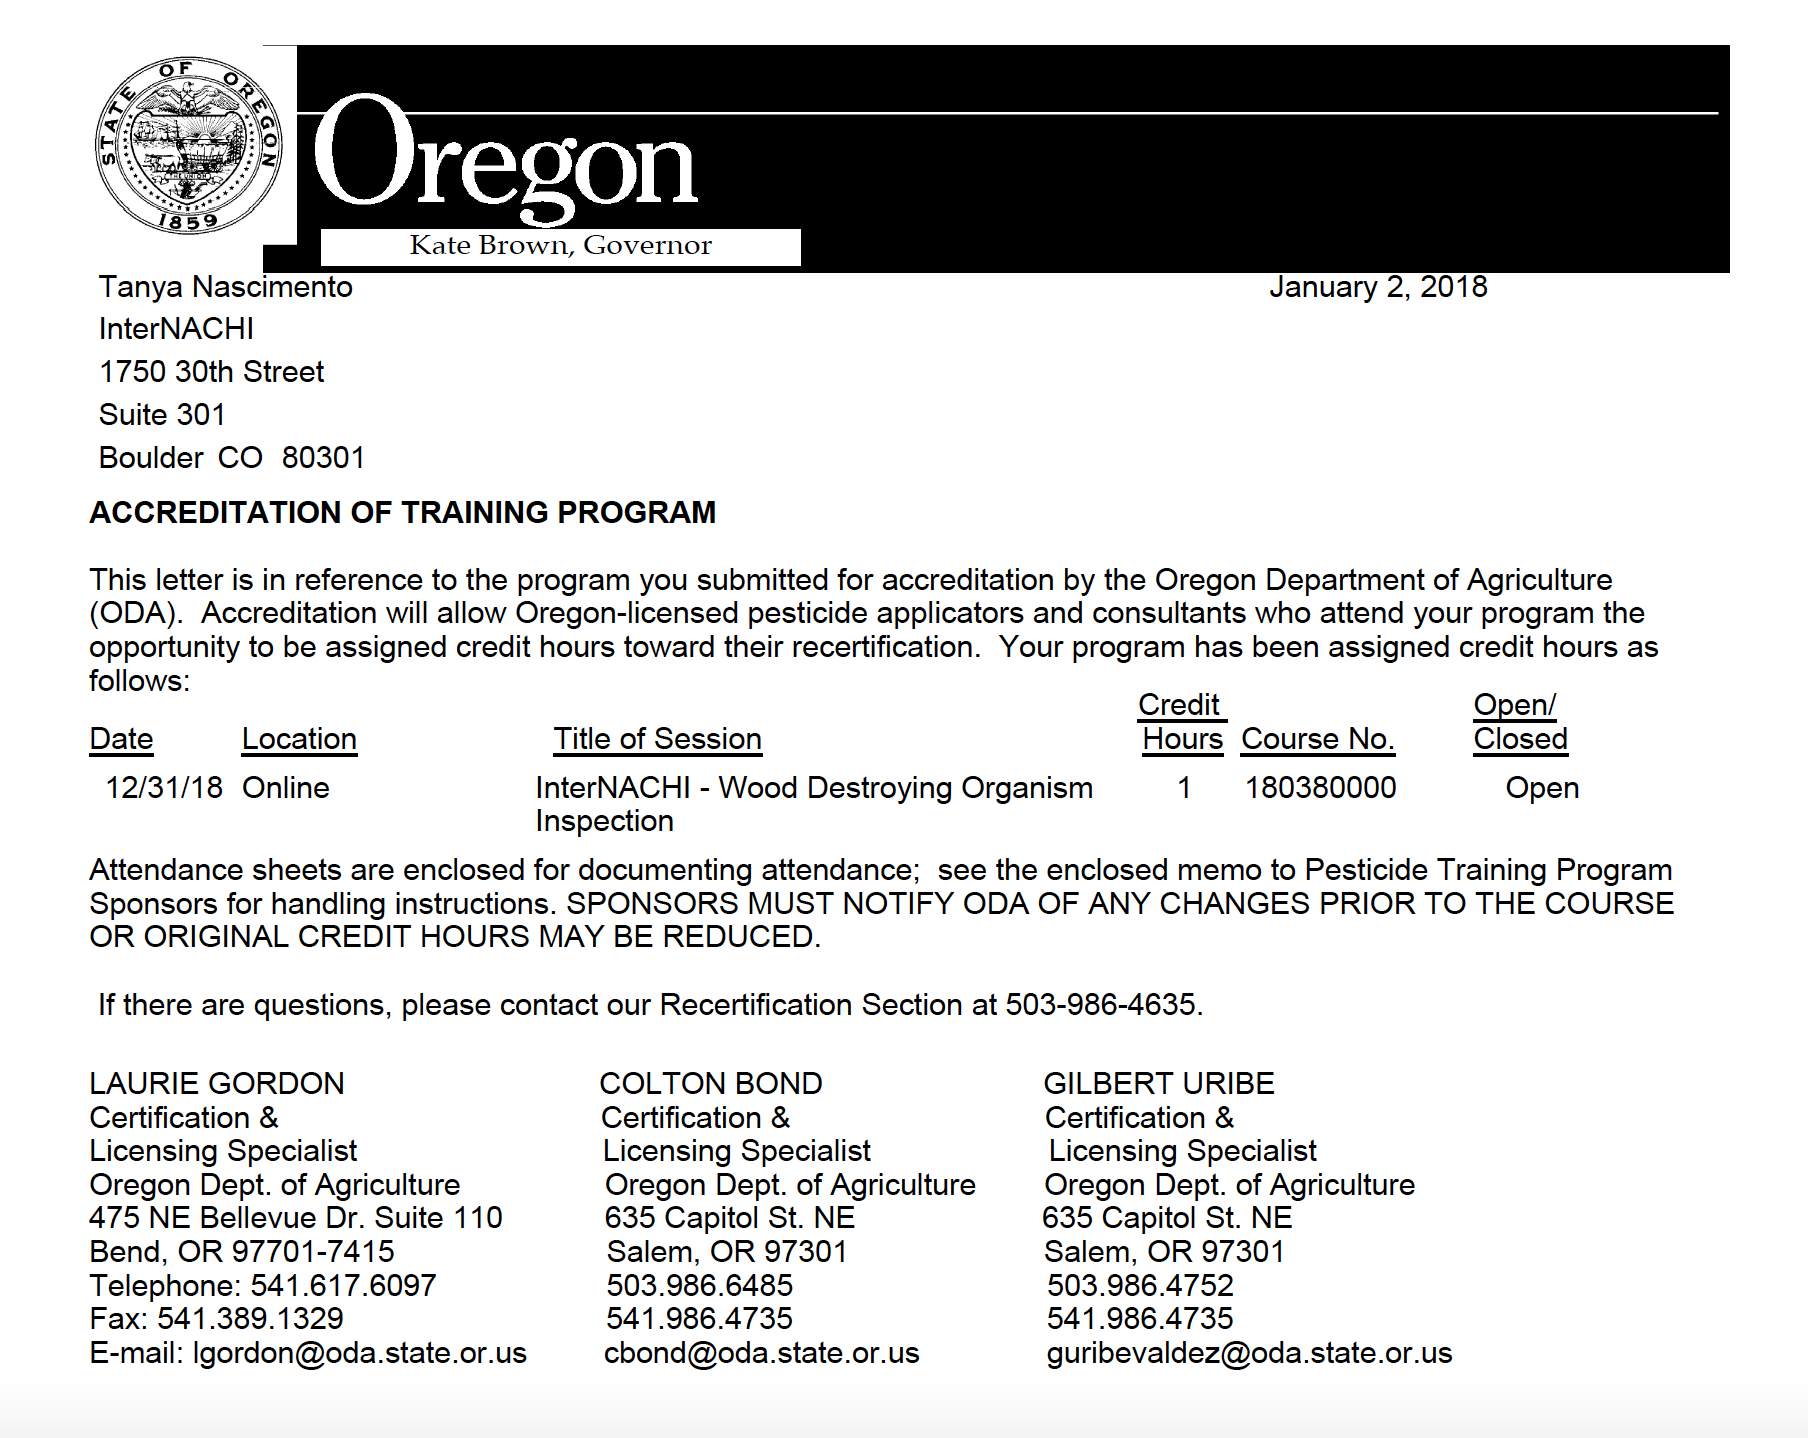 Oregon department of agriculture approves internachis free view approval of wood destroying organism inspection course 1betcityfo Gallery